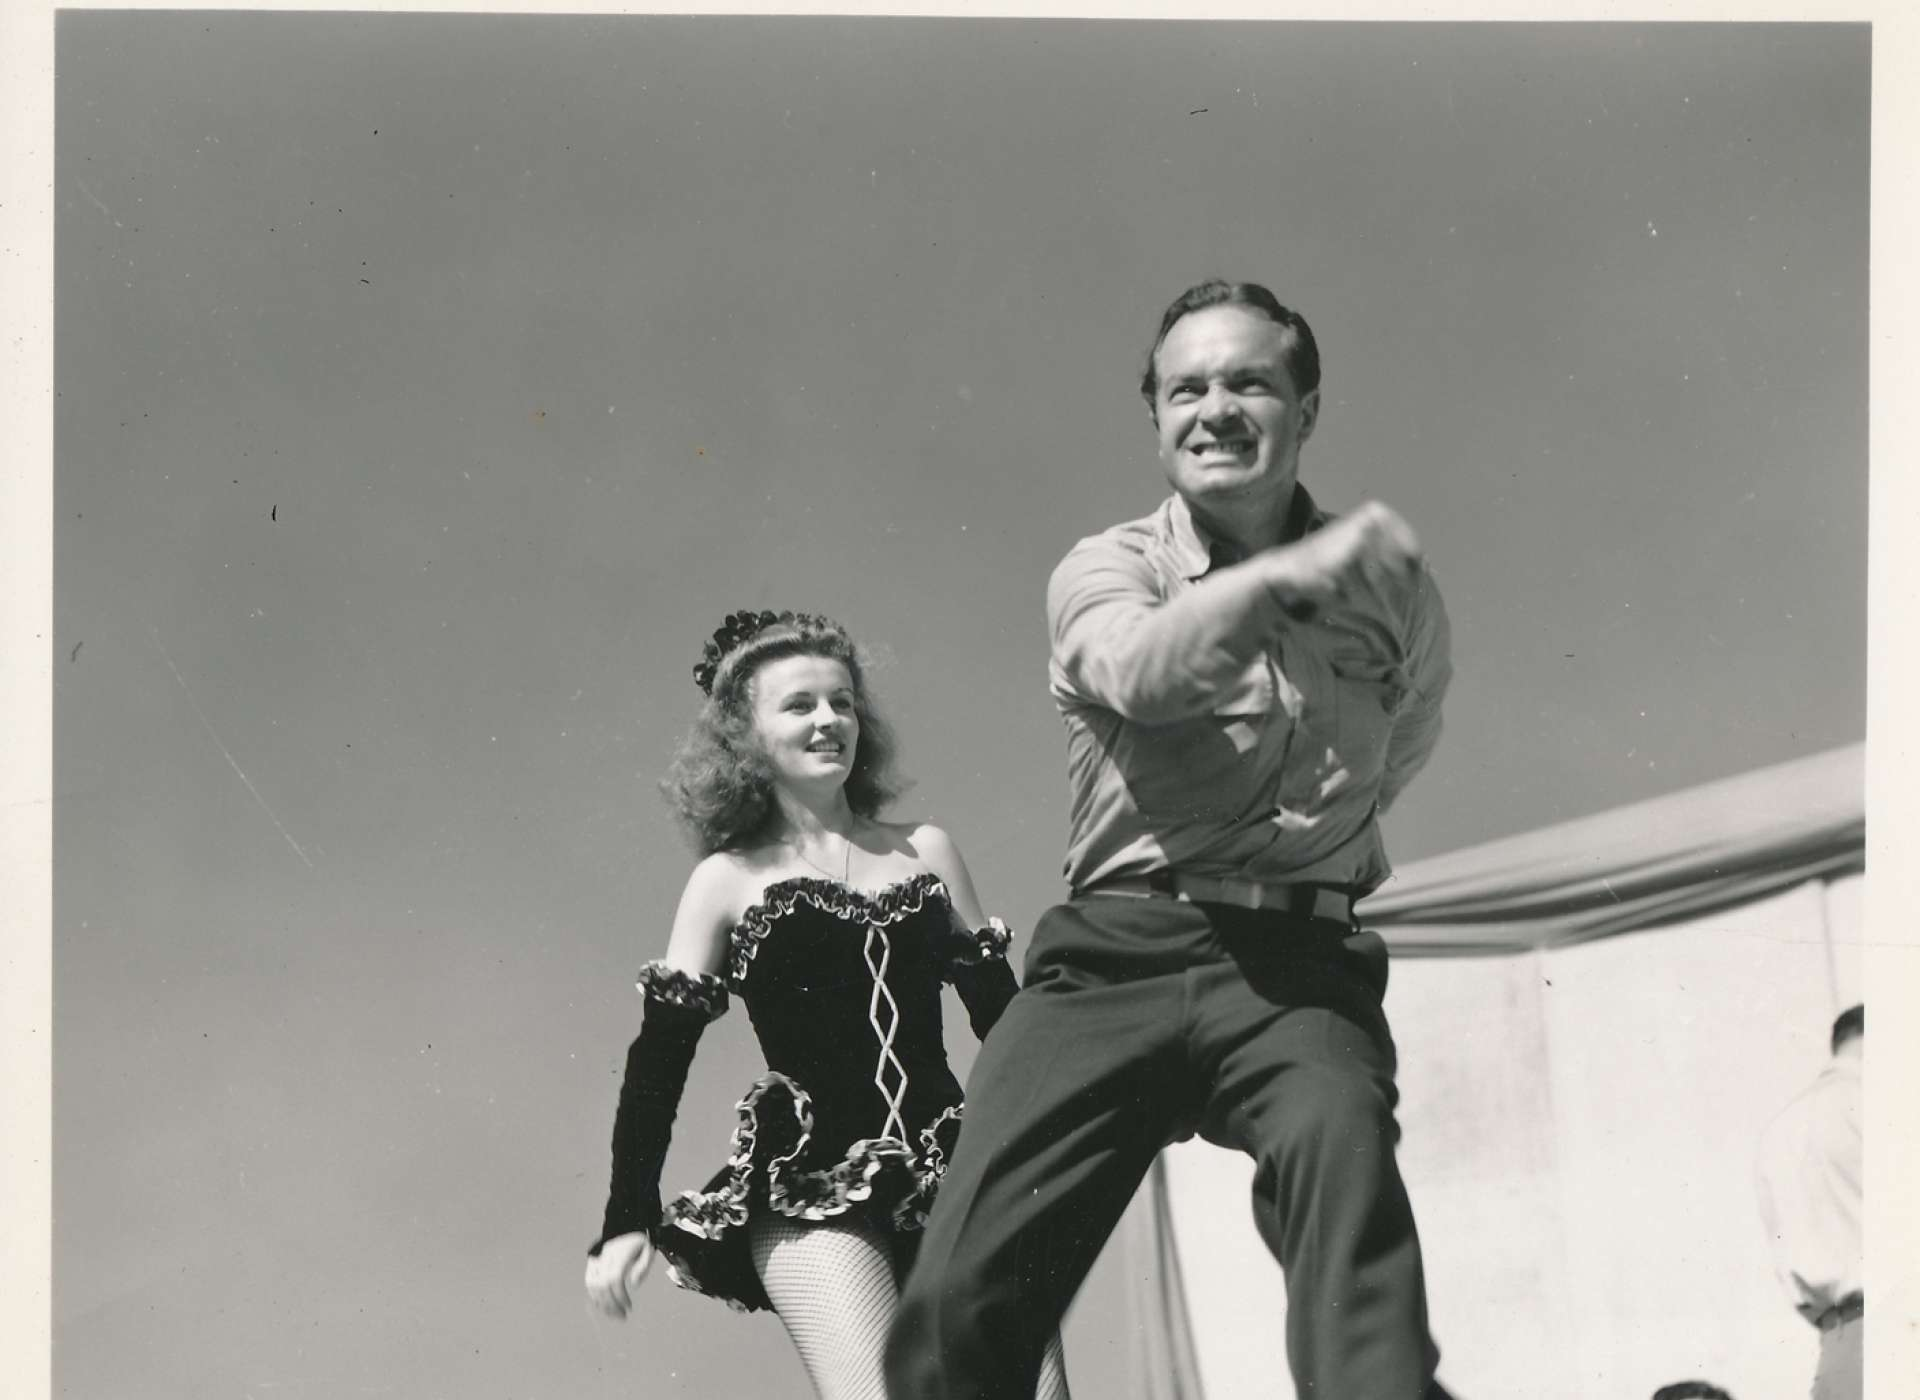 Bob Hope performing with Patty Thomas